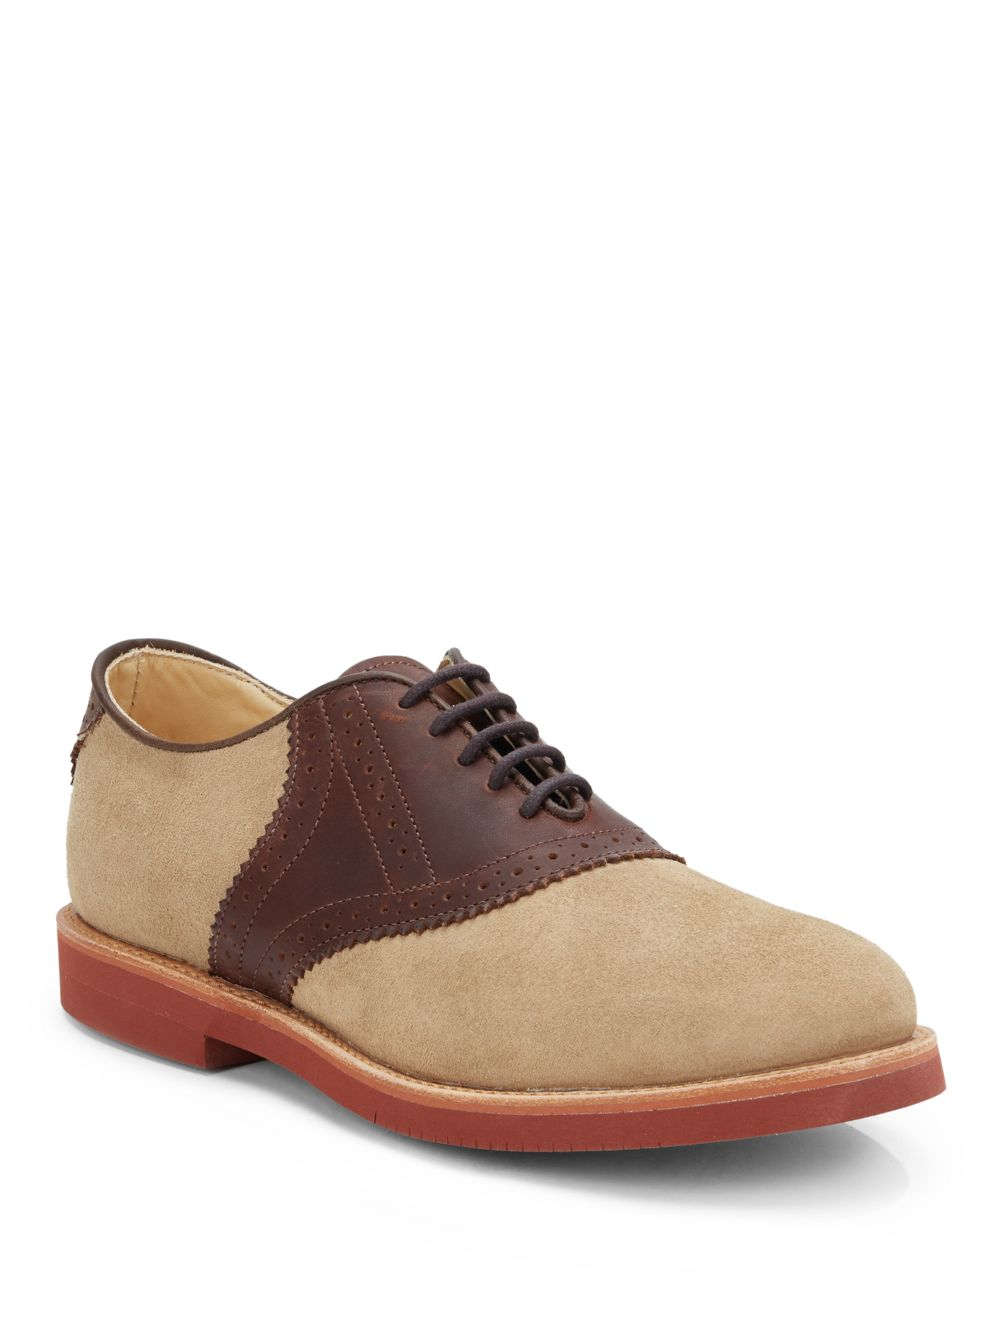 Walk Over Suede Leather Saddle Oxford Shoes In Natural For